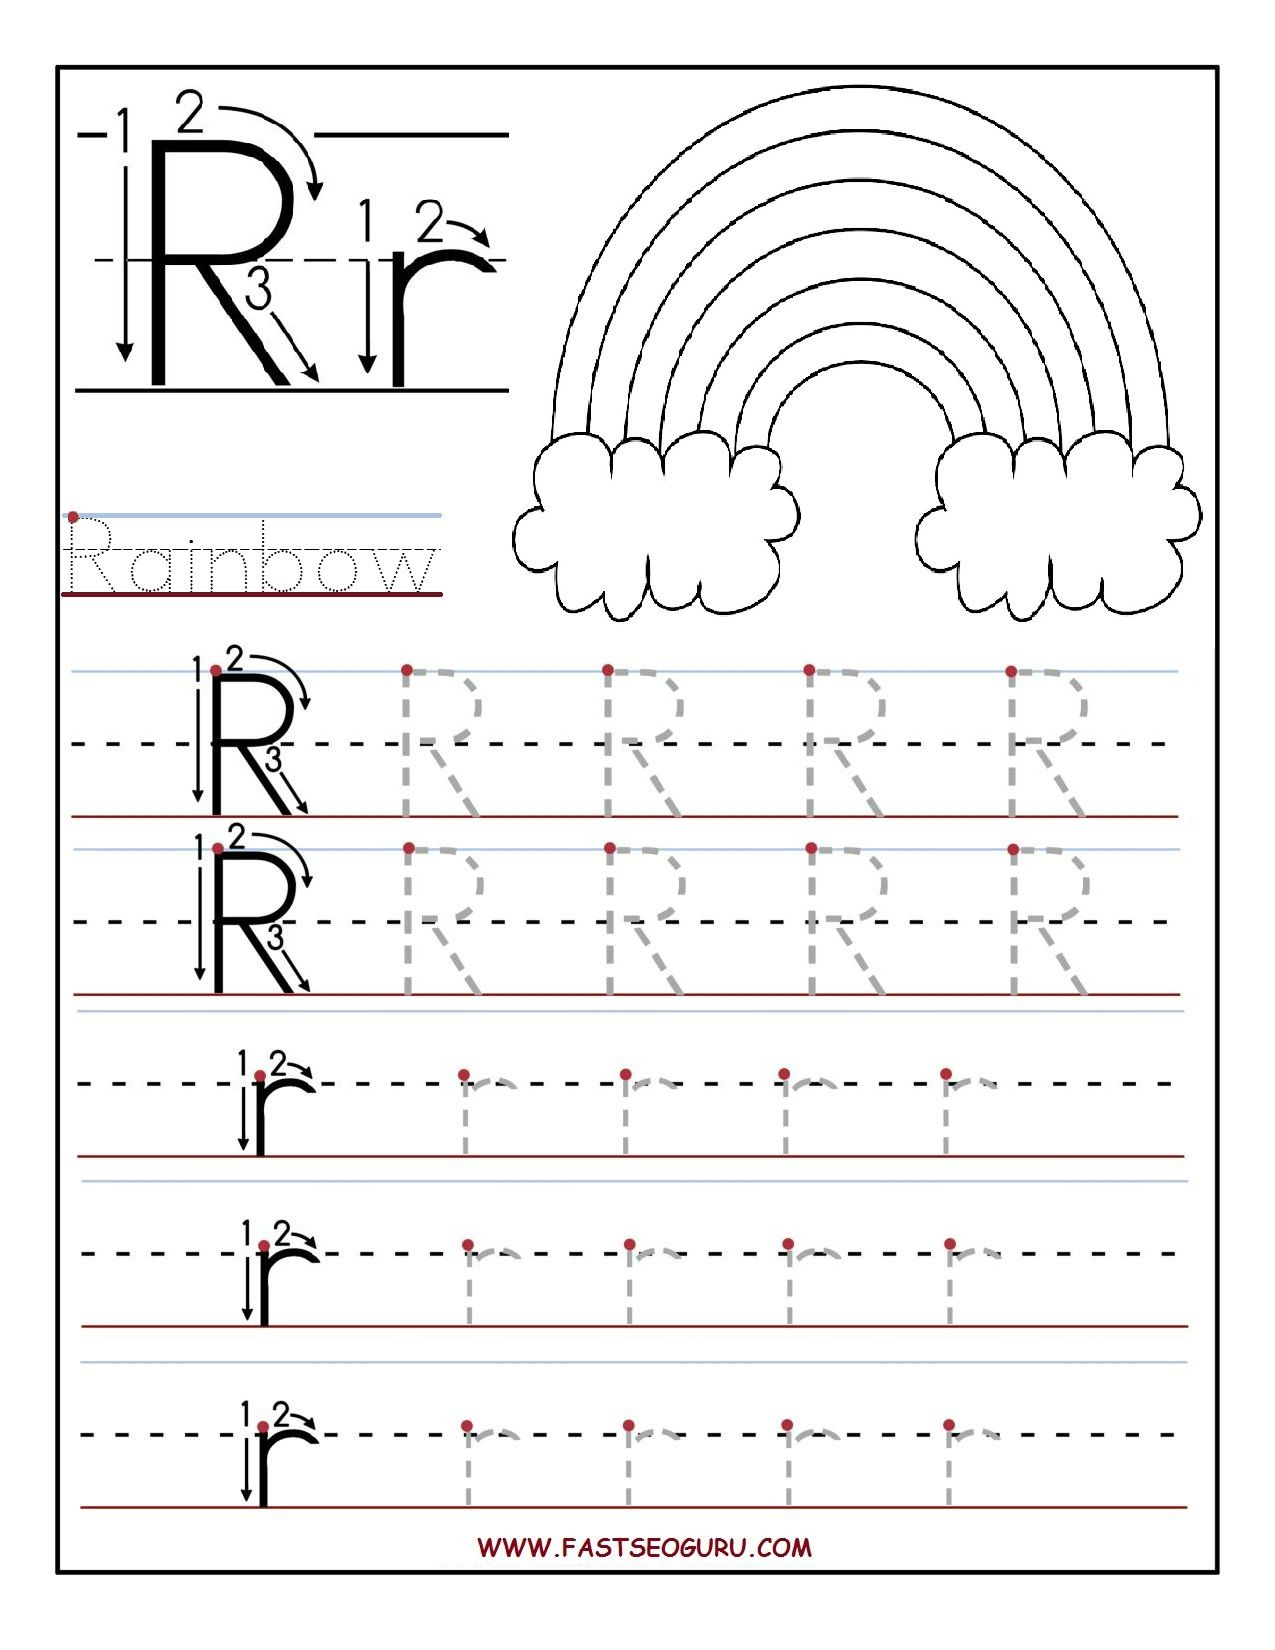 Printable Letter R Tracing Worksheets For Preschool | Letter intended for Letter I Tracing Page